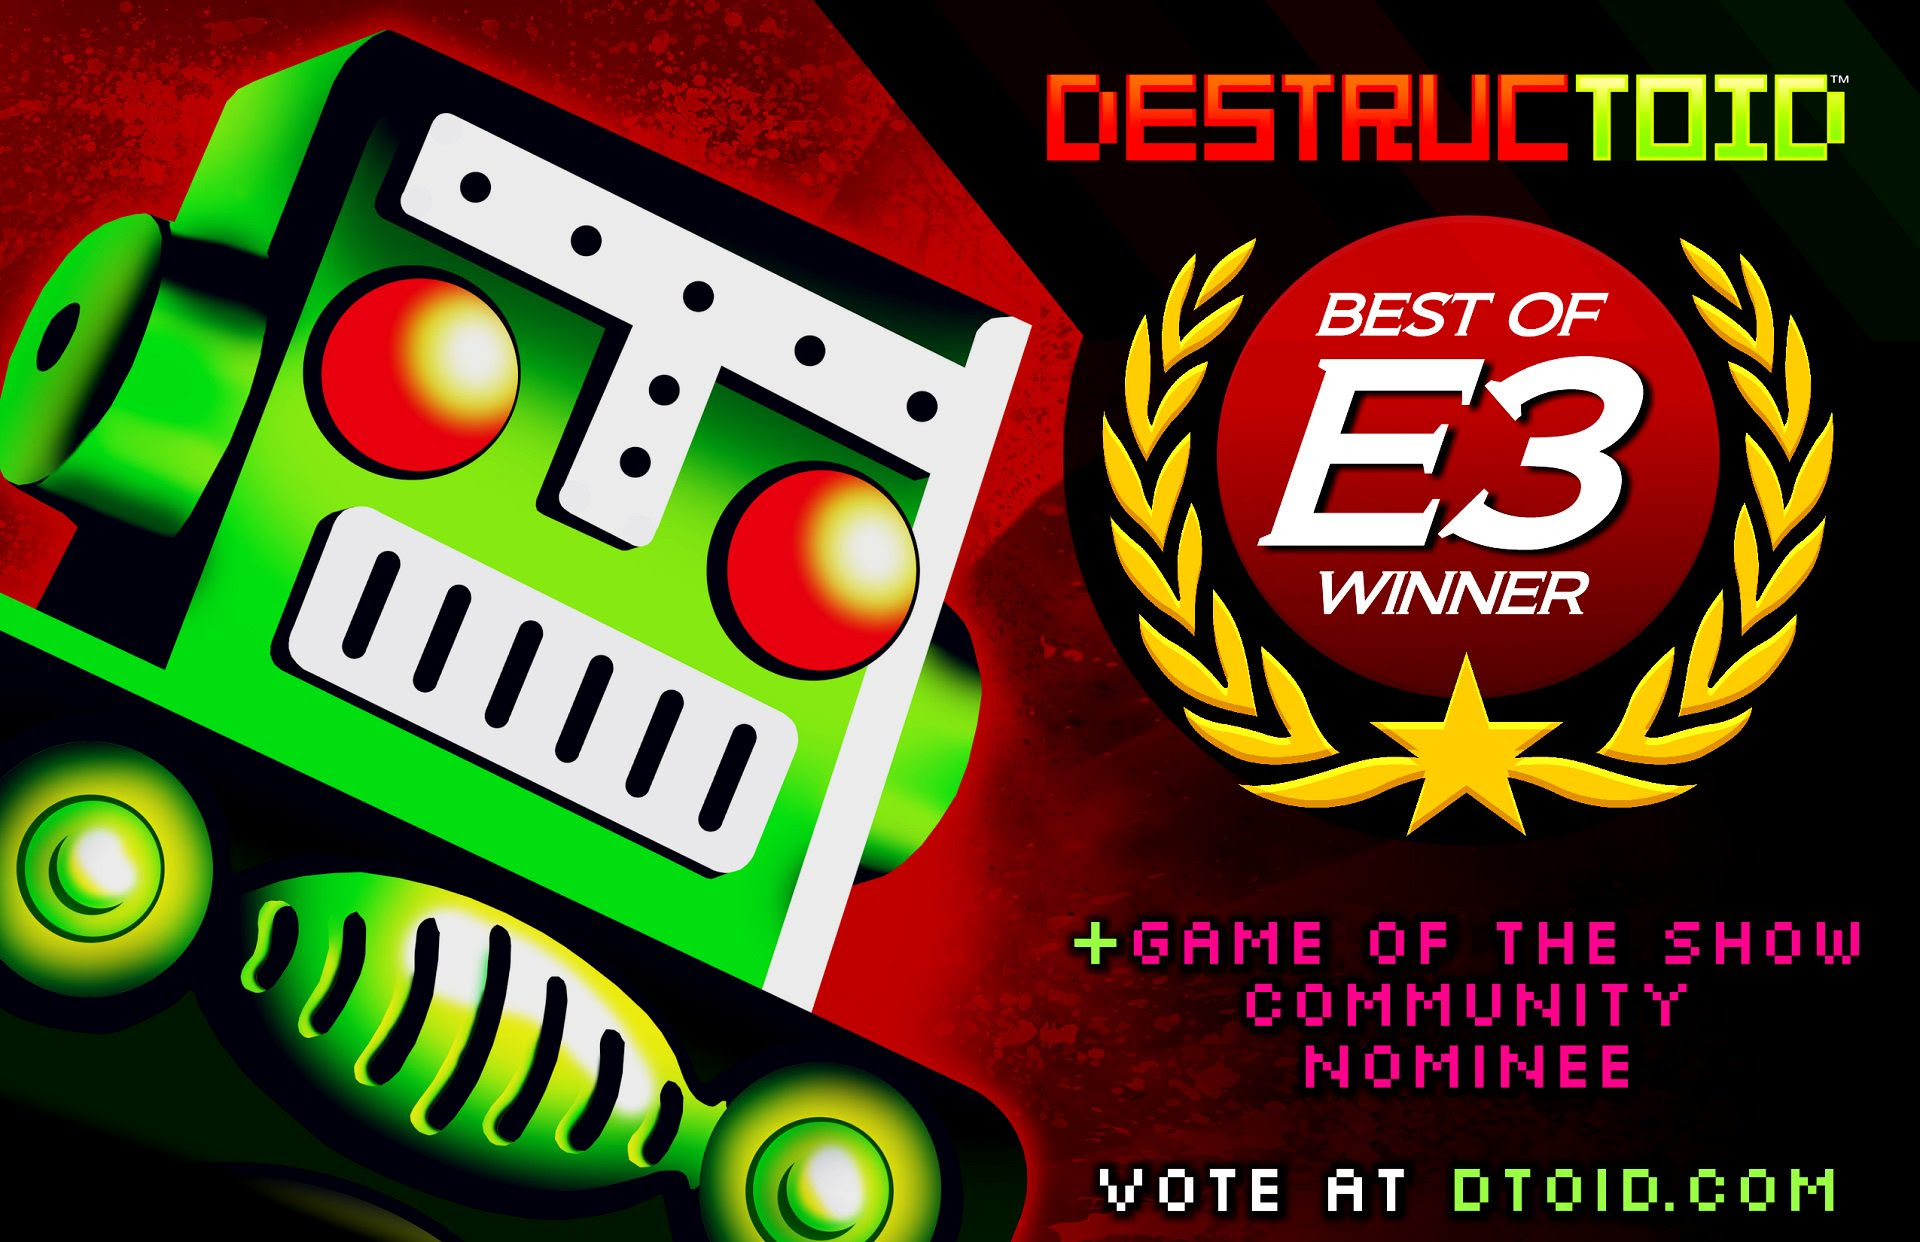 Your winner for Destructoid's E3 Community Choice Award is... screenshot